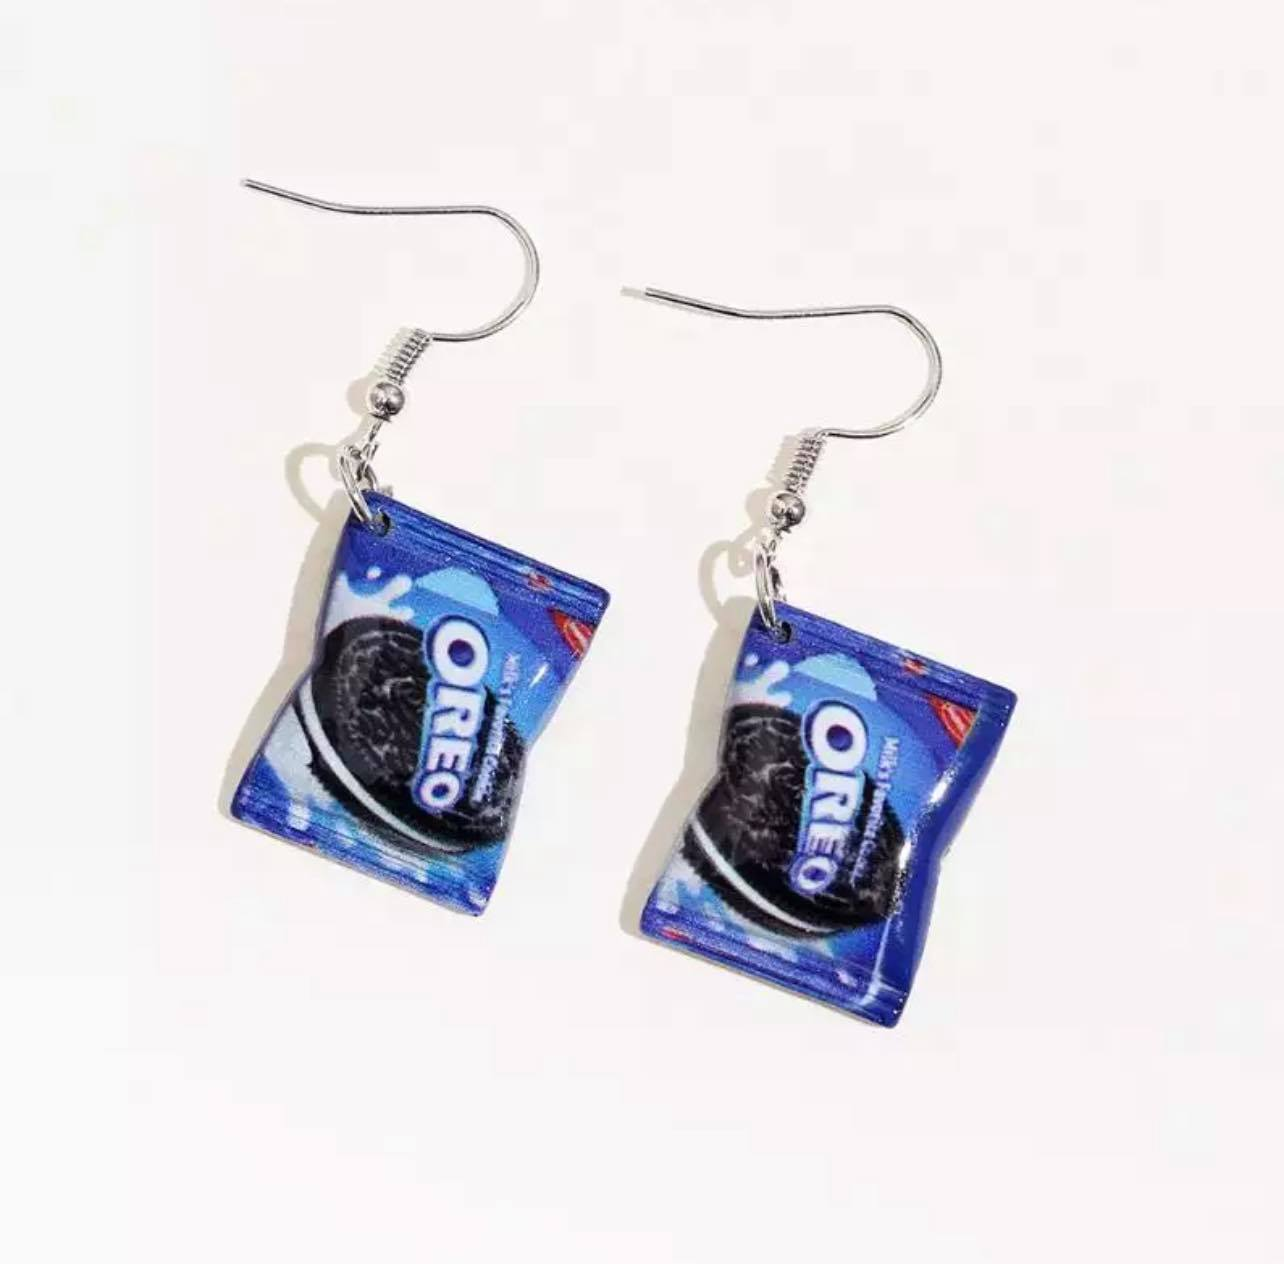 Fashion Jewellery 1 Pair Of Biscuit Packet Shape Dangle Earrings For Women